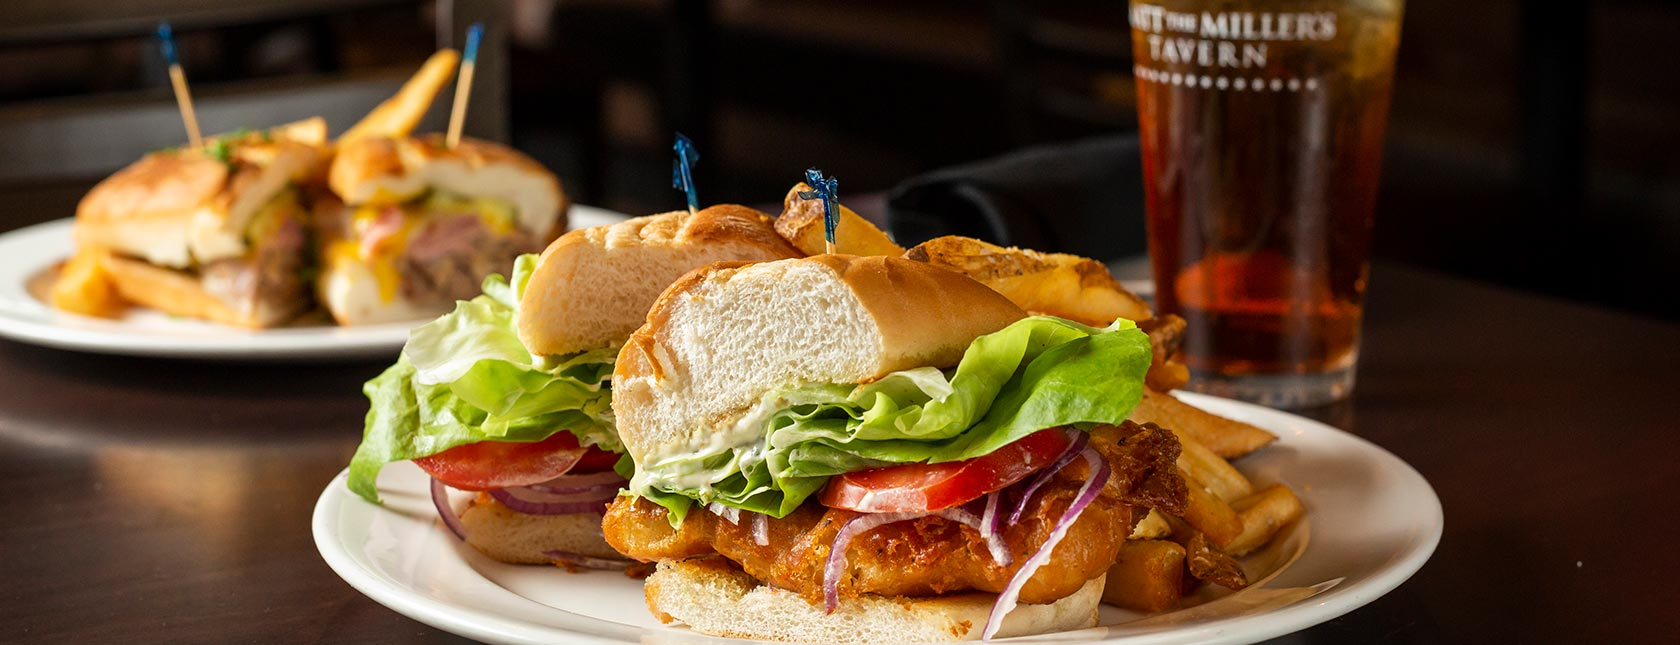 Fish Sandwich cut in half with lettuce, tomato, mayo dressing, iced tea in background